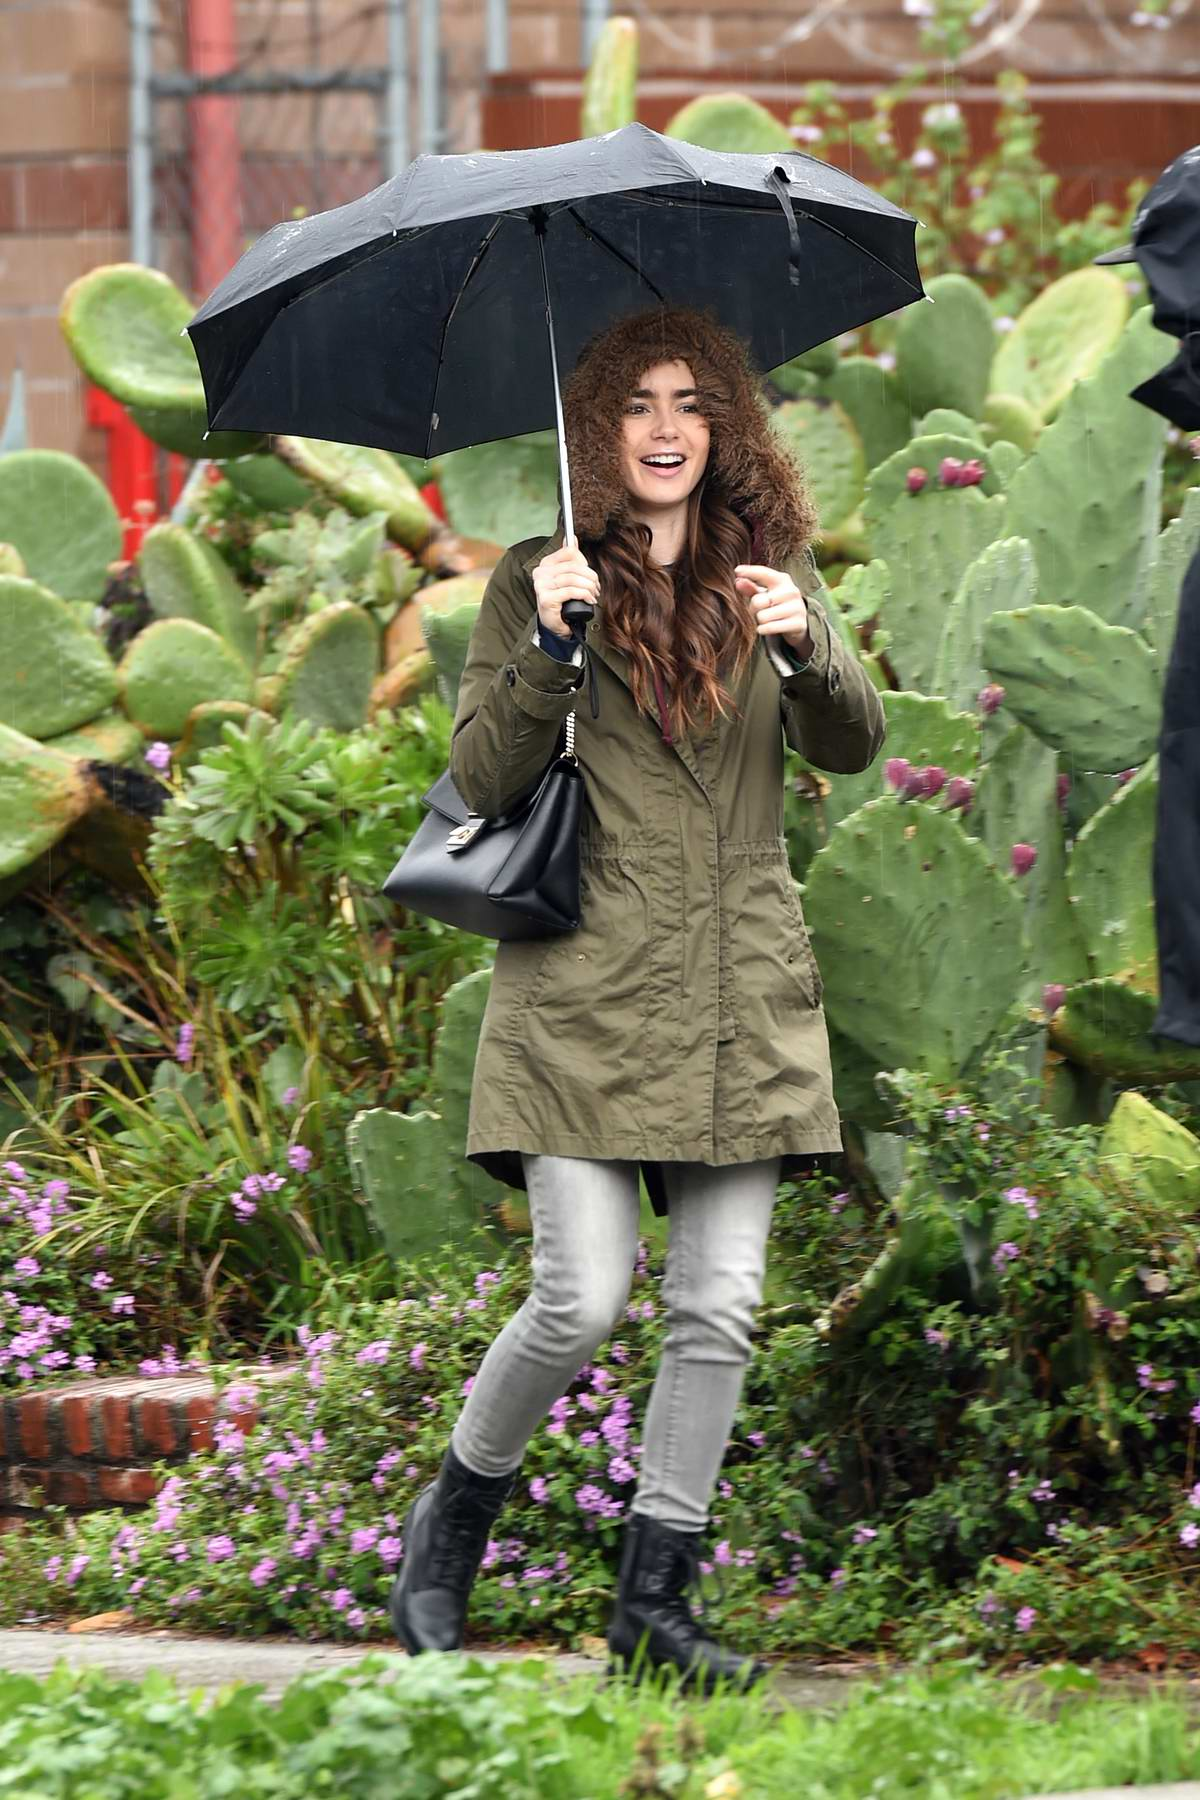 Lily Collins is all smiles as she steps out in the rain while leaving a holistic studio in Los Angeles